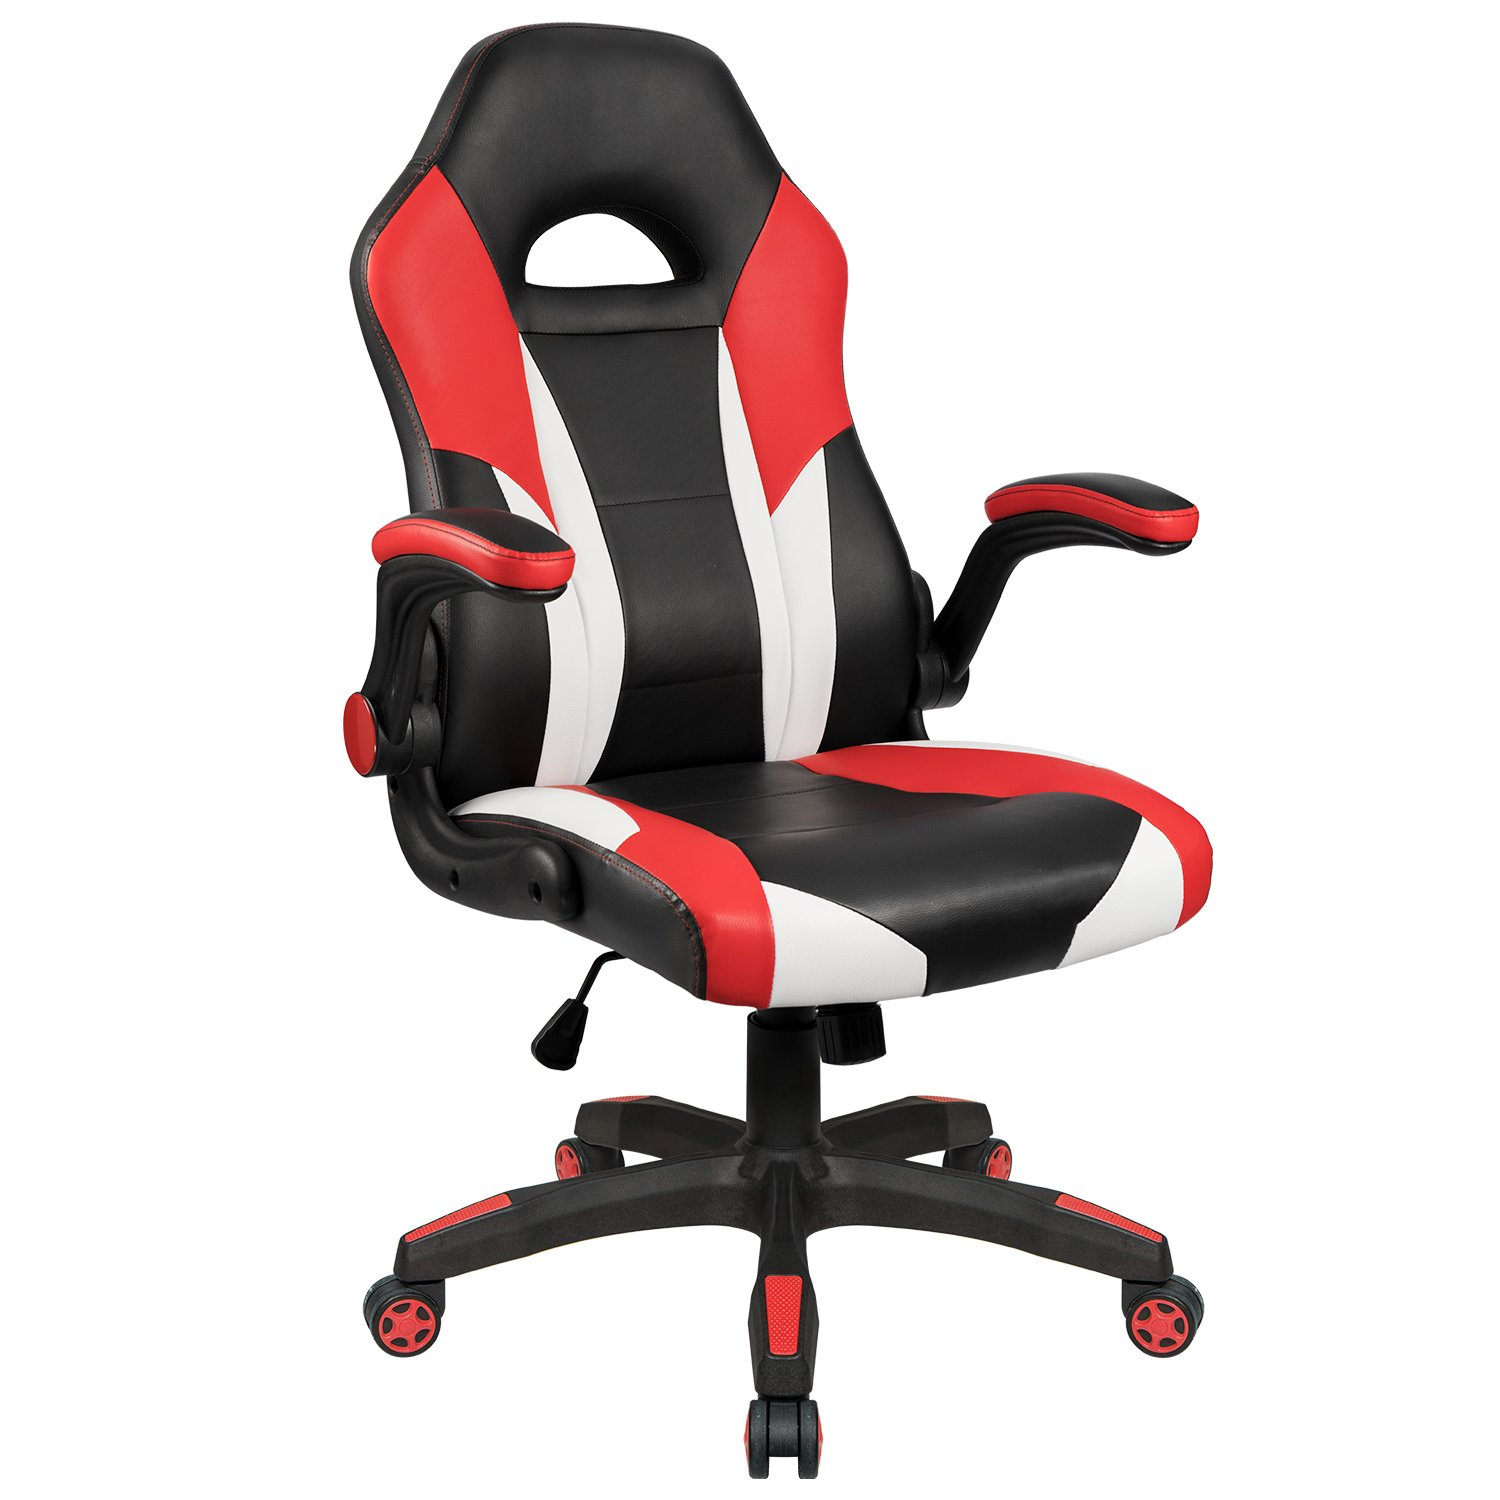 Homall Gaming Chair Racing Style Computer Chair PU Leather High Back Office Chair Ergonomic Desk Chair Executive Swivel Task Chair with Wide Seat Flip Up Padded Armrests (Red)